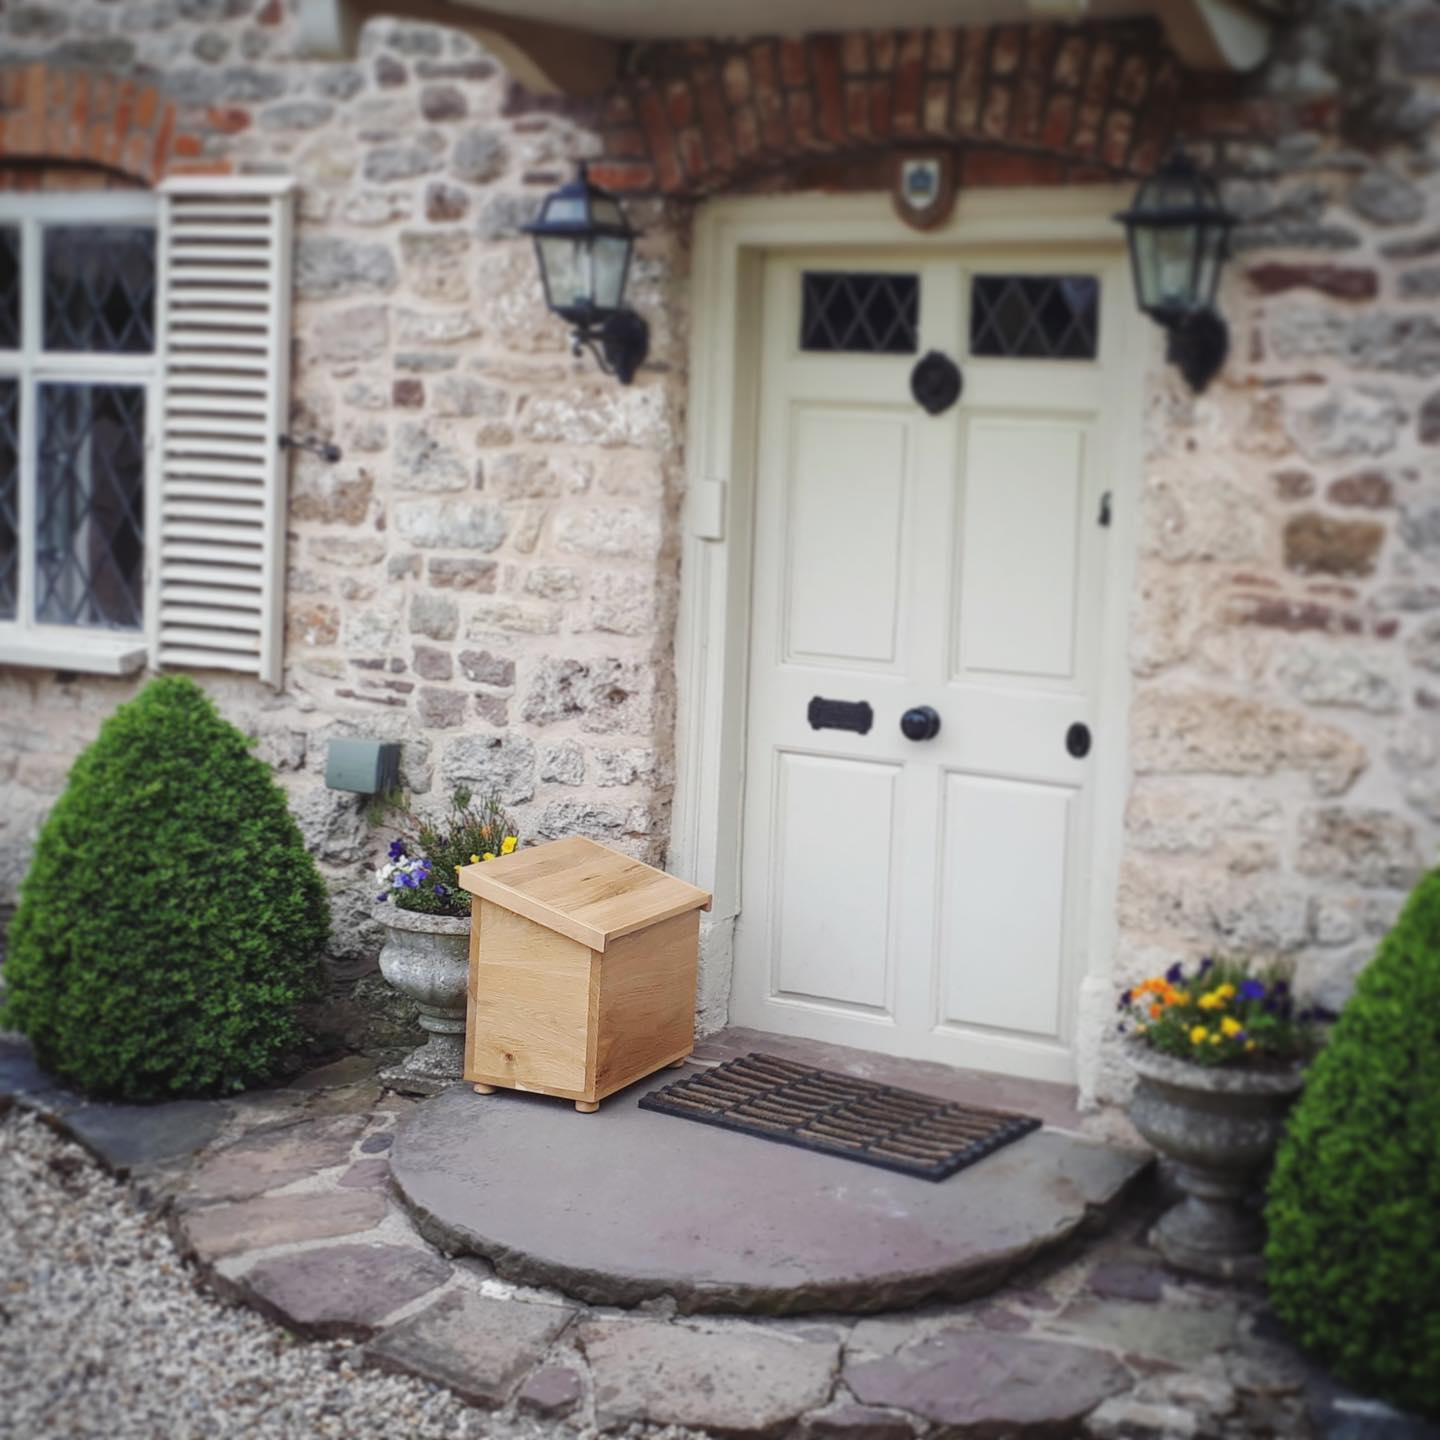 This oak postbox was a commission we worked on at the end of last year. We have received a lovely photo of it in situ. Super proud of this piece and the owners are delighted with it which makes us very happy!...#countryhouse #postbox #bespoke #happycustomer #homewares #problemsolving #usefulandbeautiful #testimonial #lifestyle #proud #gingerandtweed #formandfunction